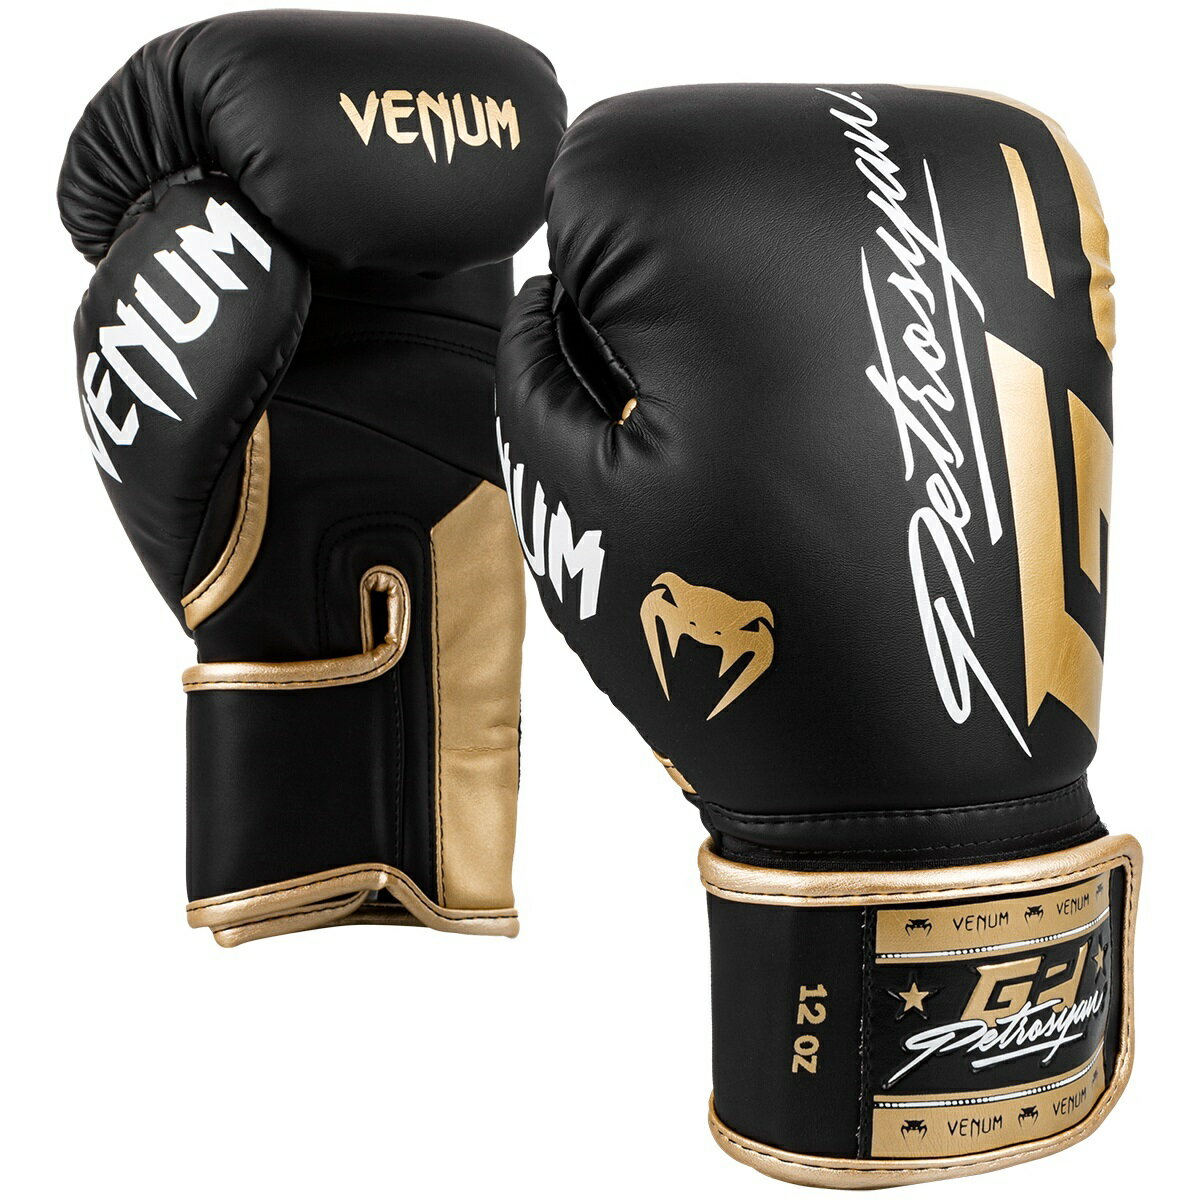 VENUM ボクシンググローブ PETROSYAN BOXING GLOVES //ボクシング キックボクシング スパーリング 送料無料